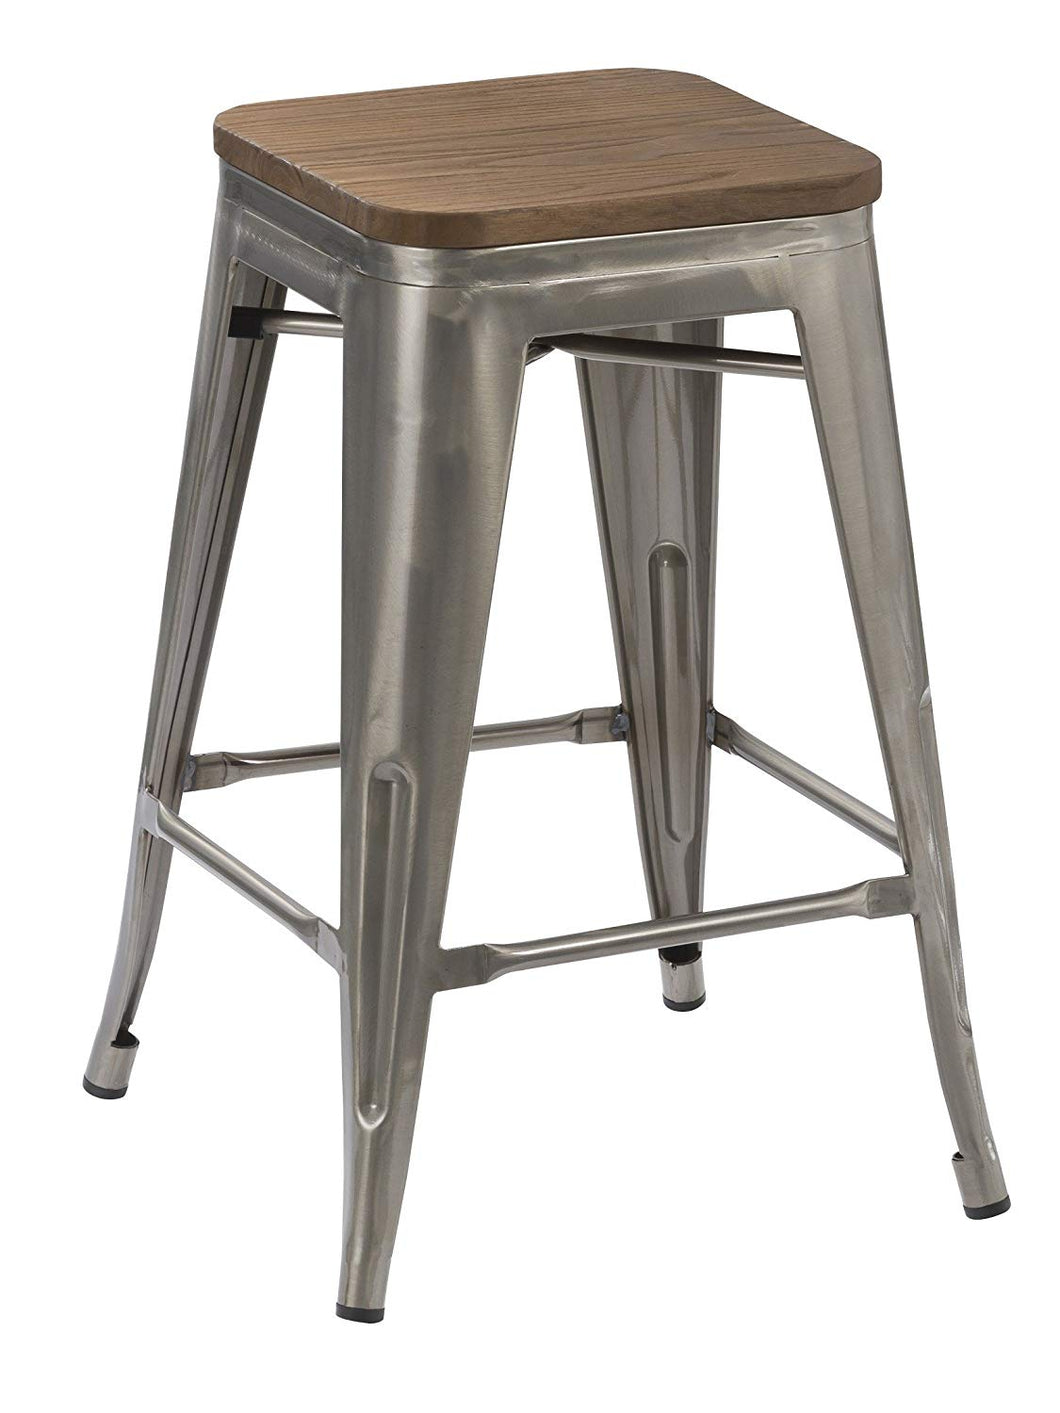 meilleure sélection b4c09 69c20 BTEXPERT 24-inch Industrial Stackable Tabouret Metal Vintage Antique Rustic  Style Clear Brush Distressed Counter Bar Stool Modern wood top seat ...